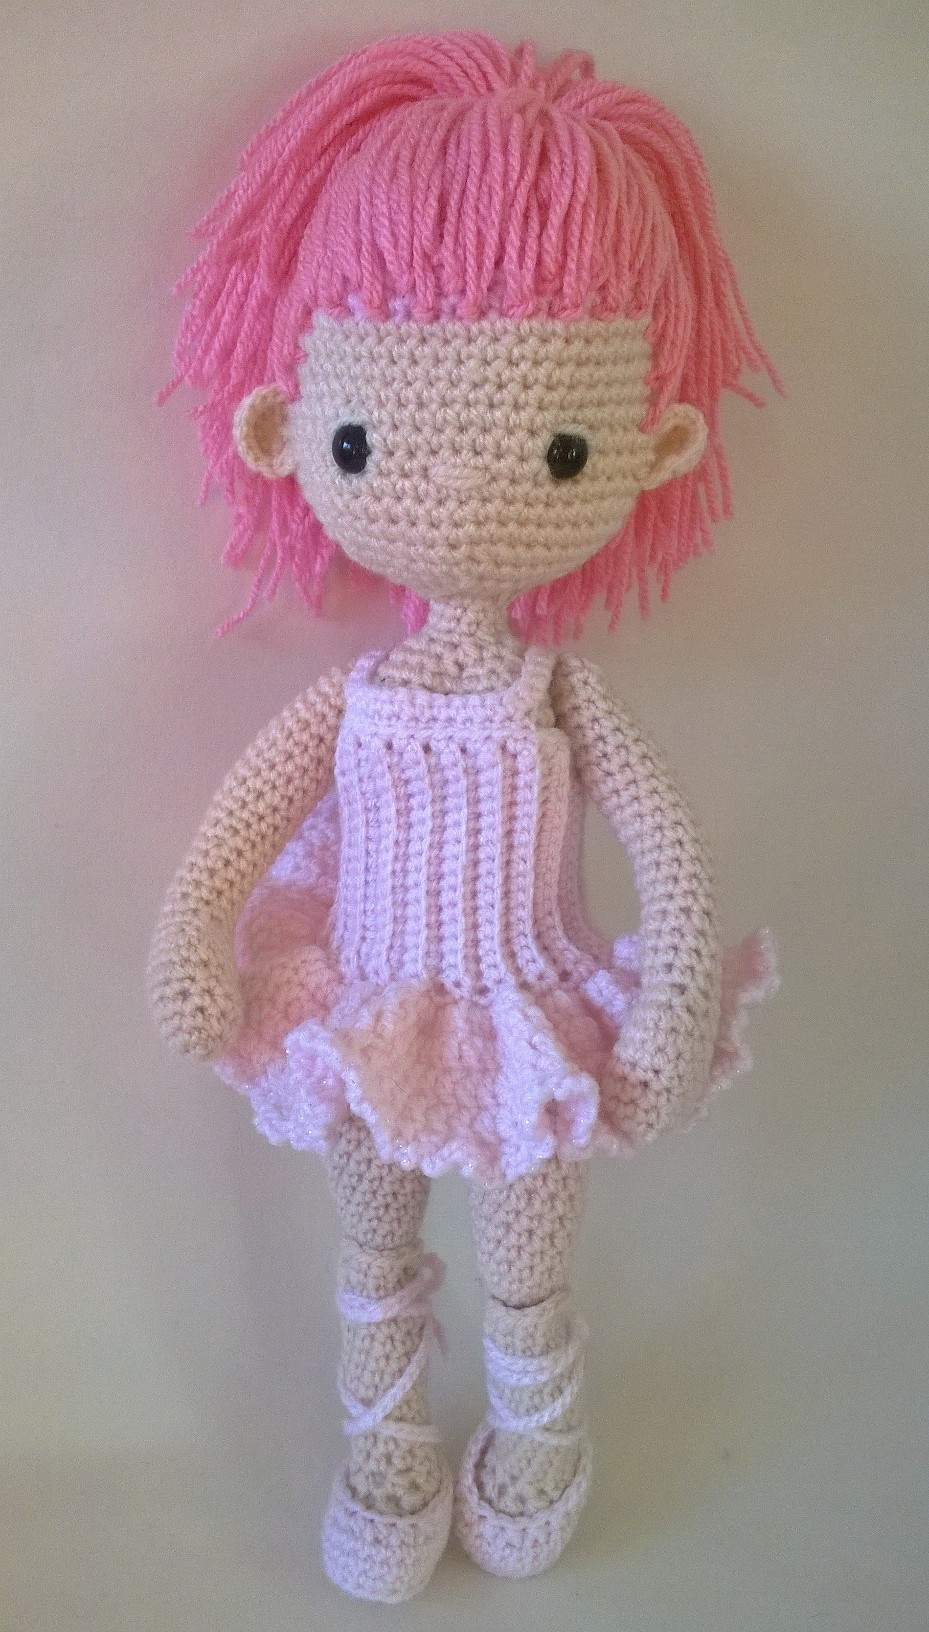 Crochet Ballerina Bear Free Pattern : My Little Crochet Doll ? Ballerina Betty Virago